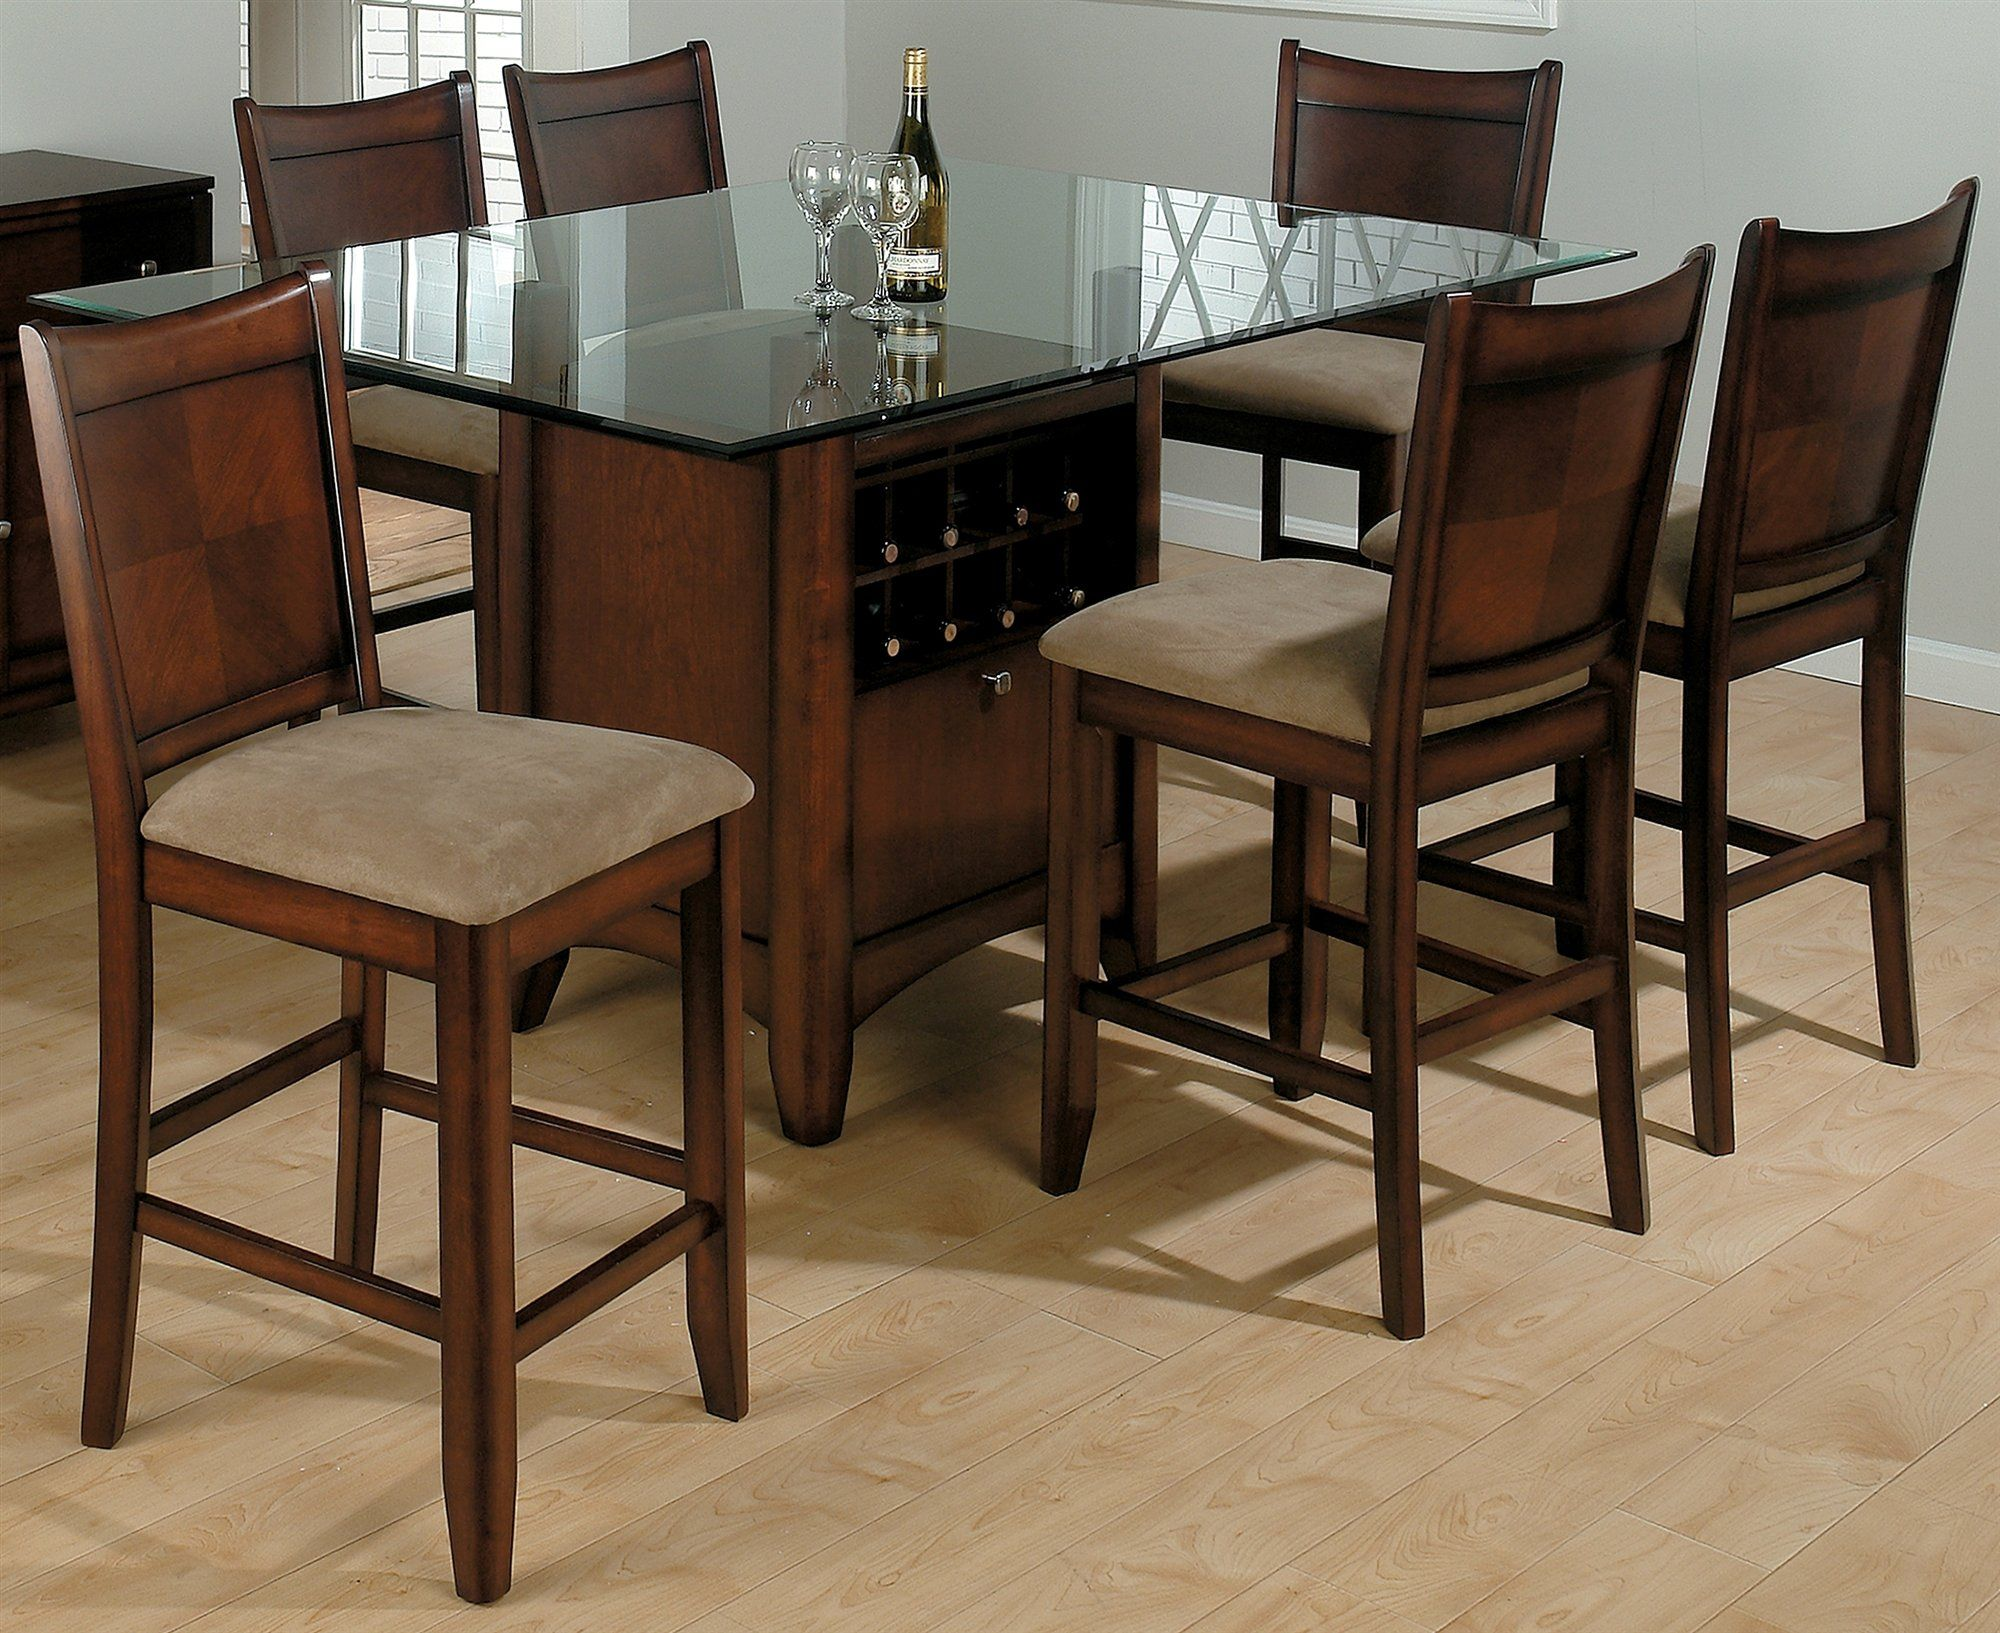 Fancy Wooden Dining Table Design With Square